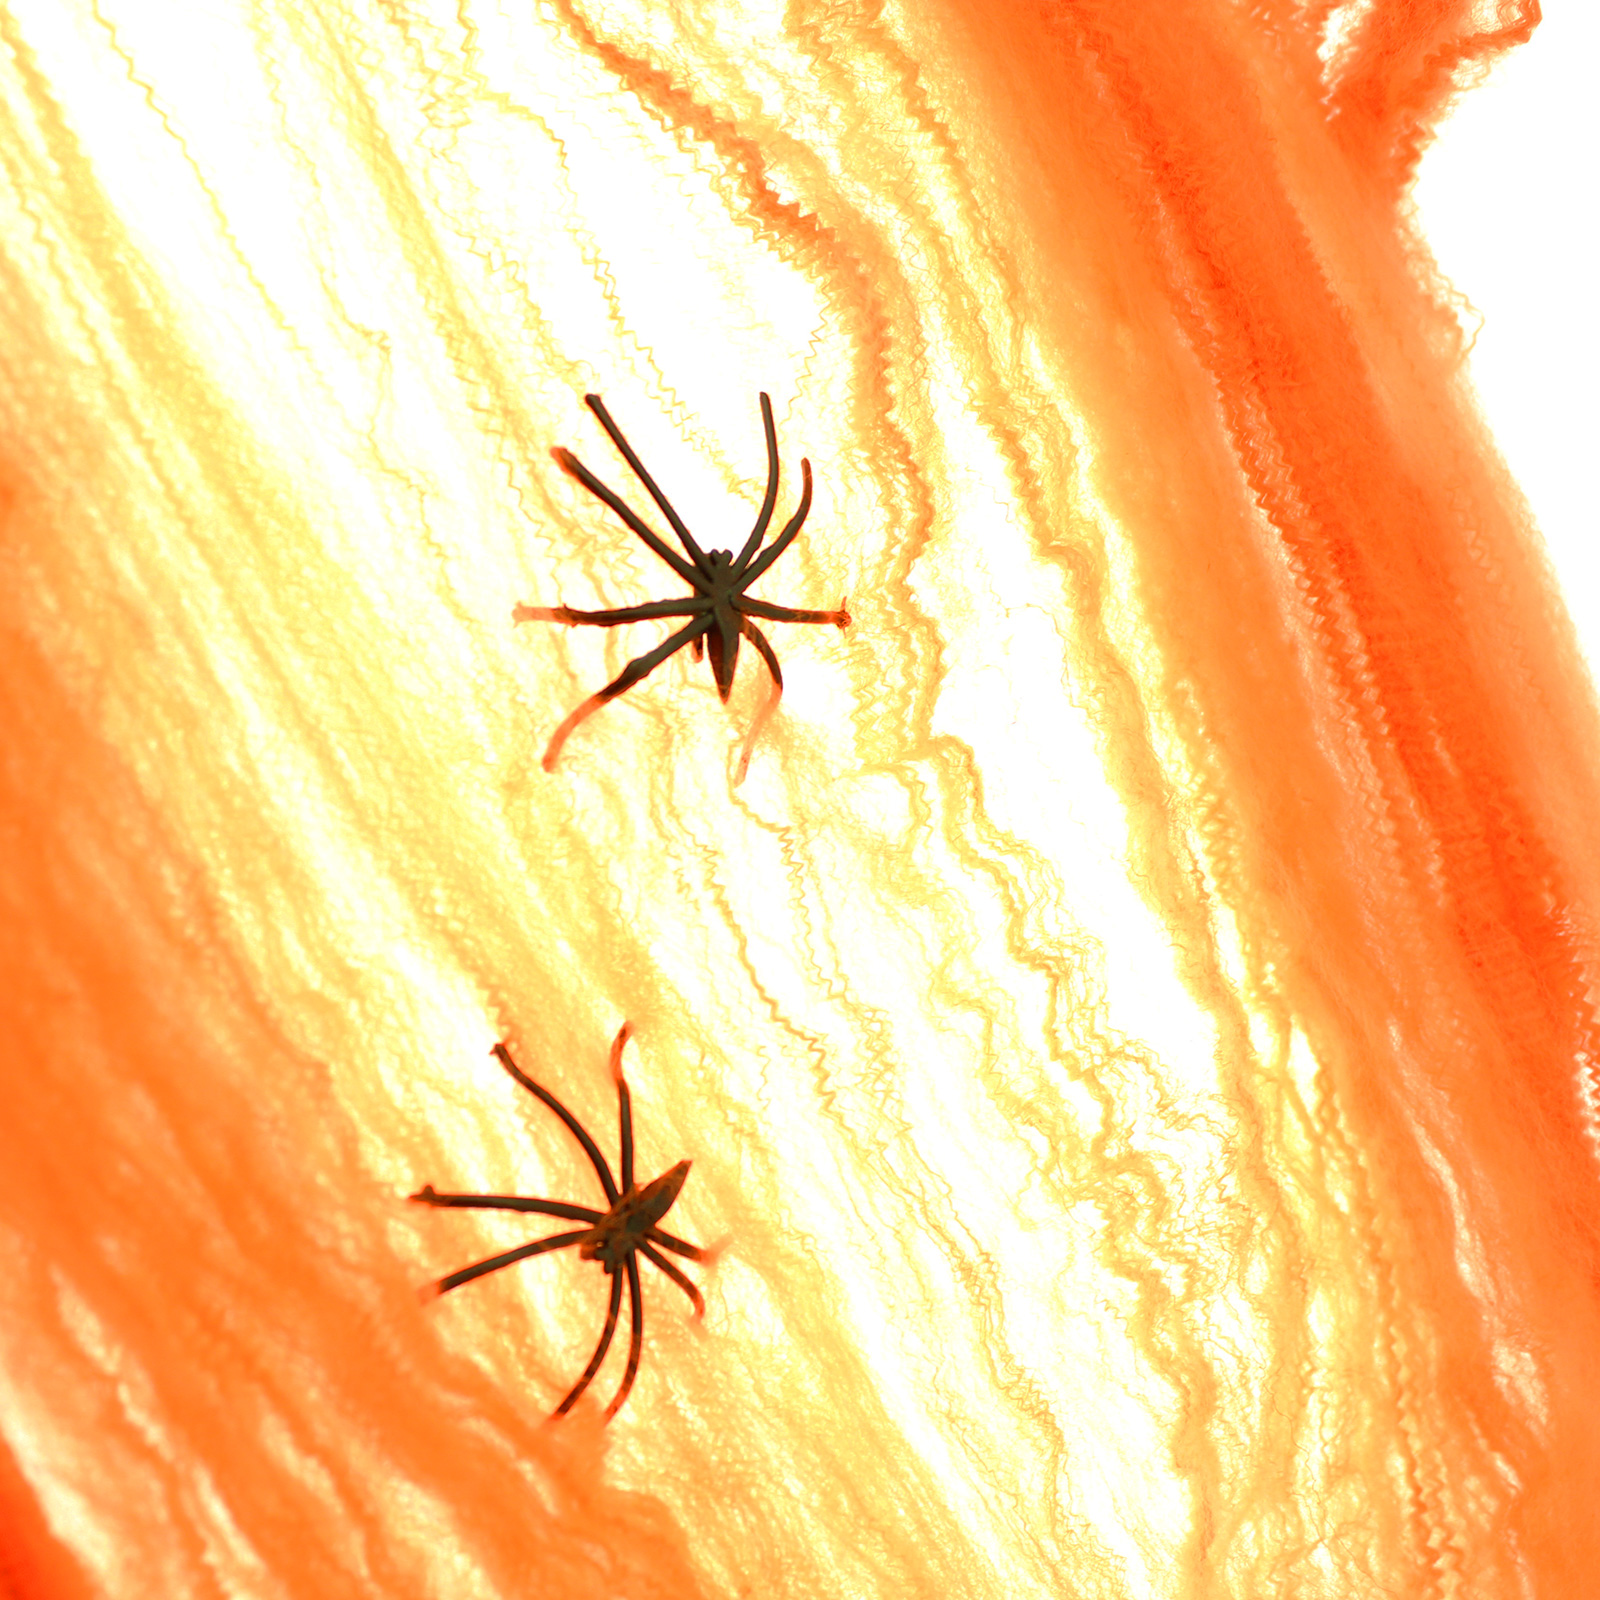 Spider Web Halloween Decorations: Scary Spider Web Spiders Halloween Haunted House Webbing